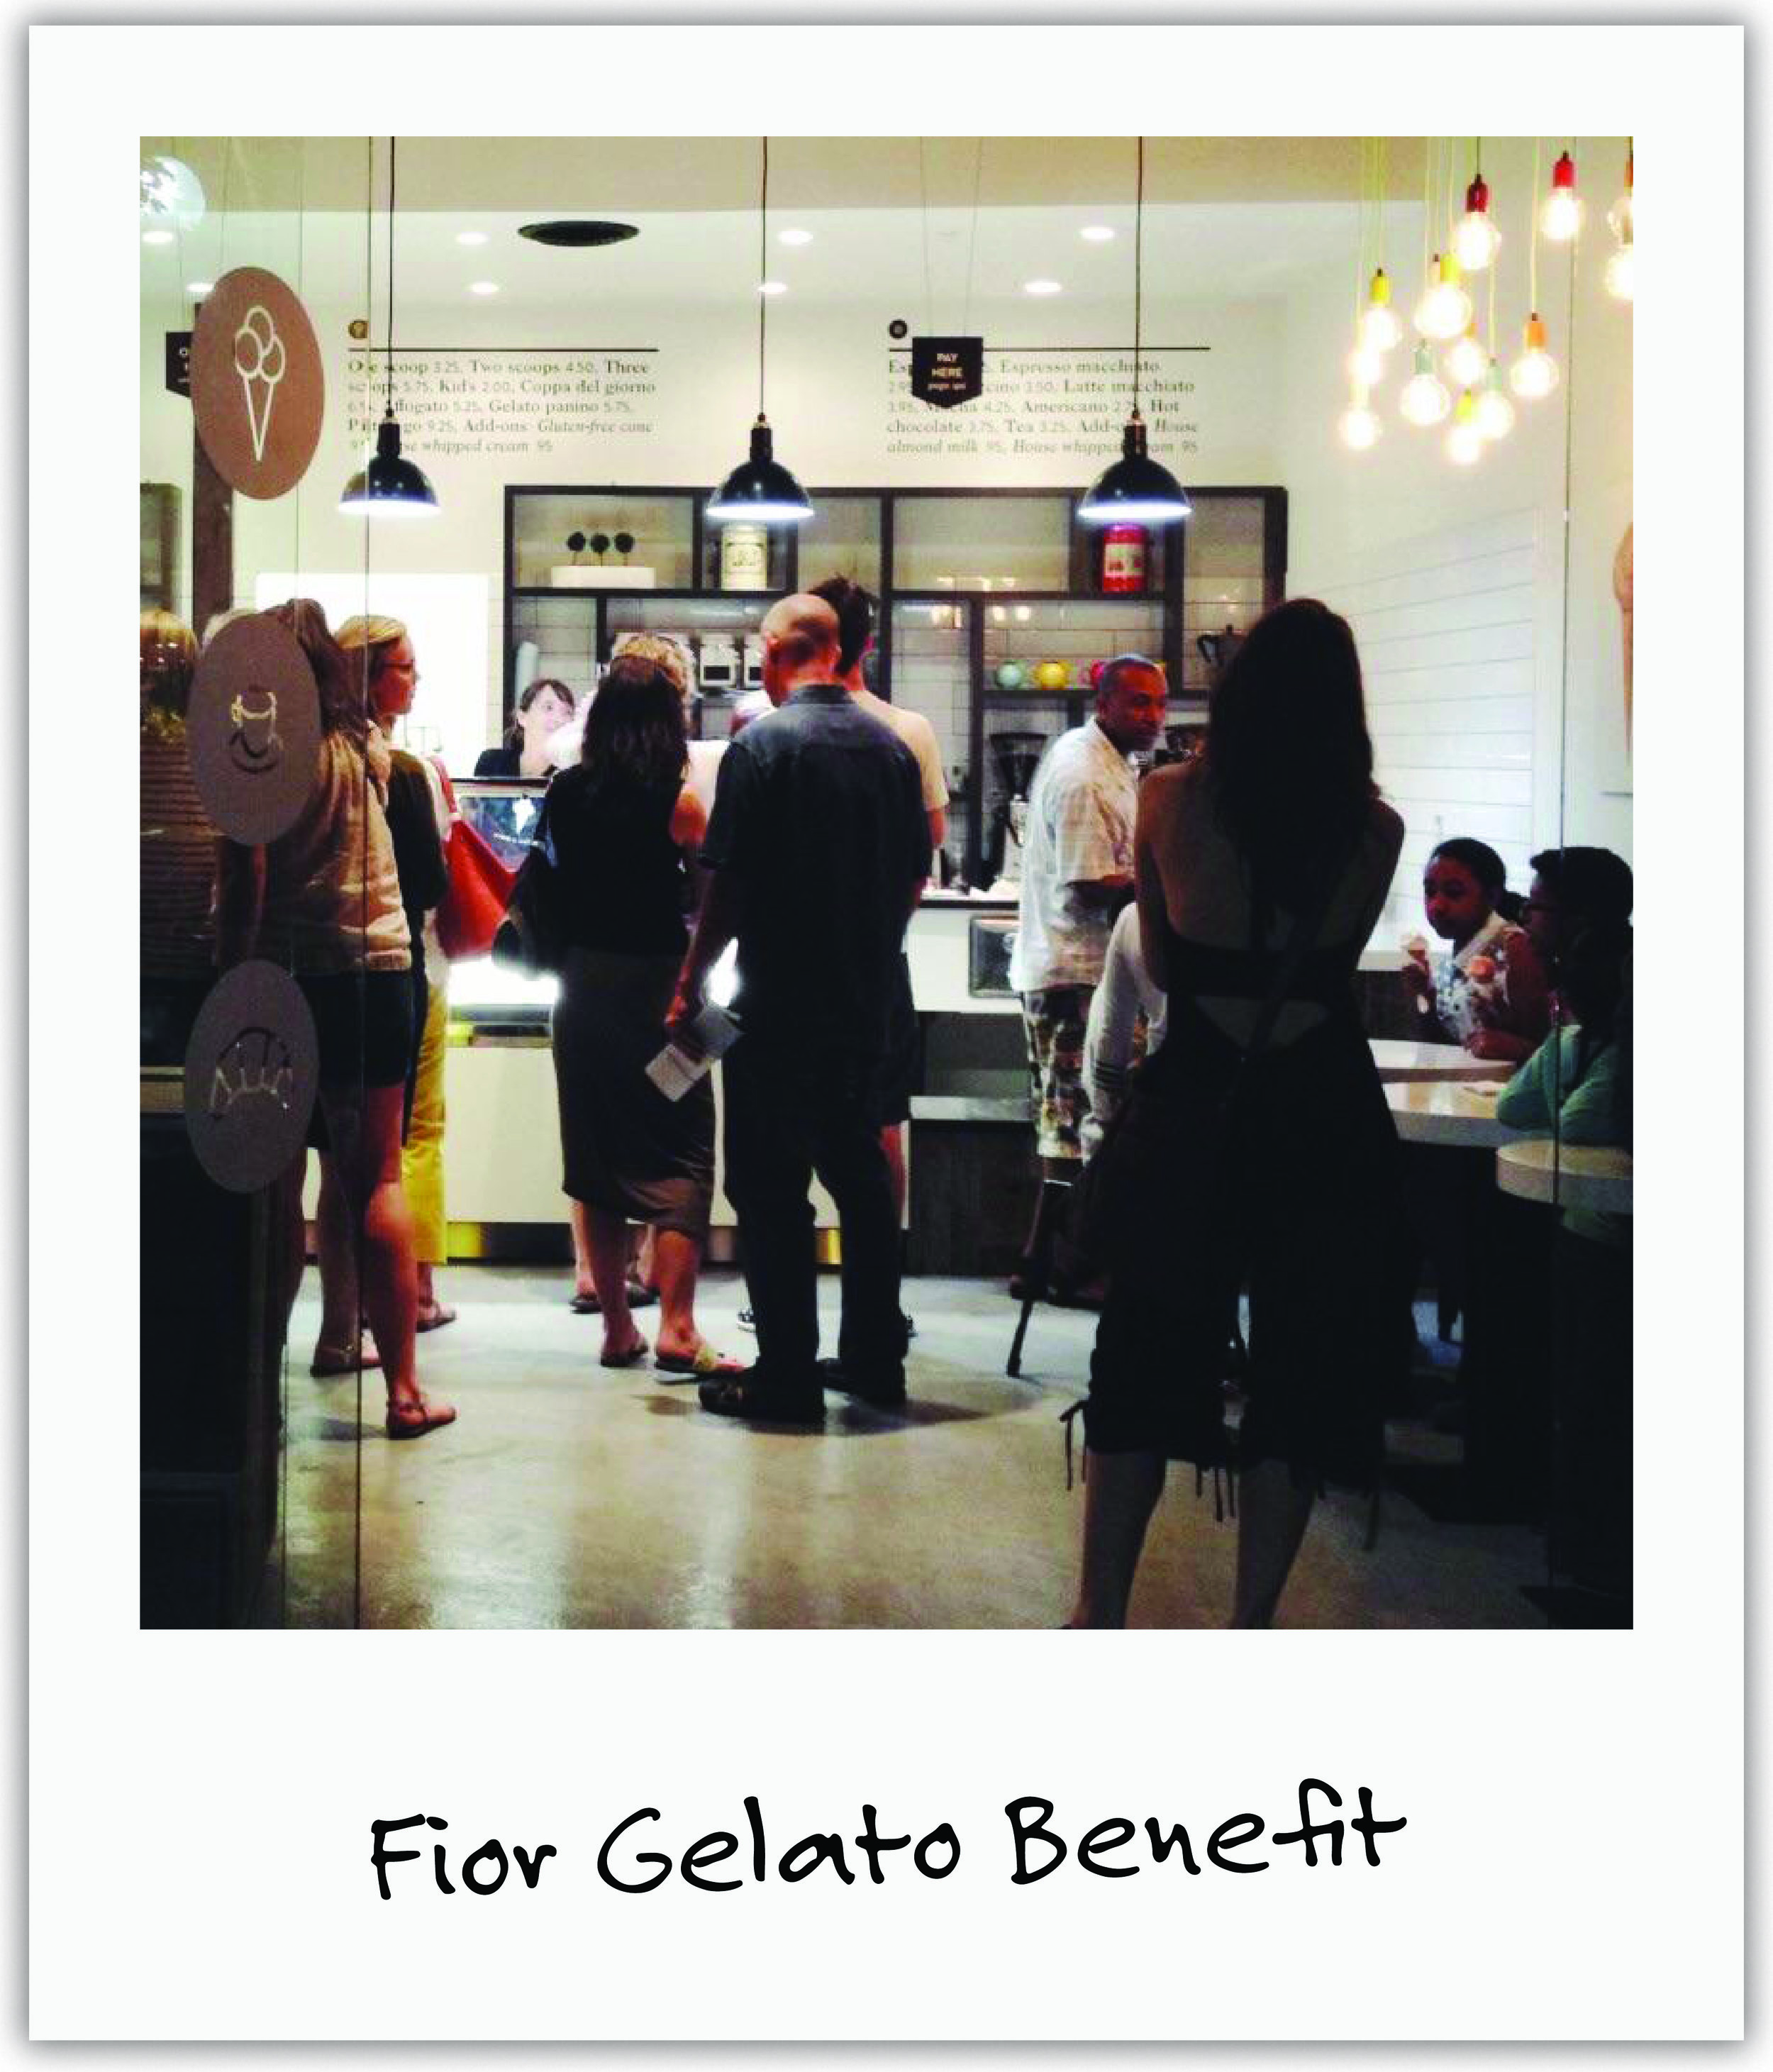 Local Fior Gelateria owners, Giulia + Bryce, dedicated their grand opening to us, with creamy gelato for Mila and friends, and all sales funding our trials.